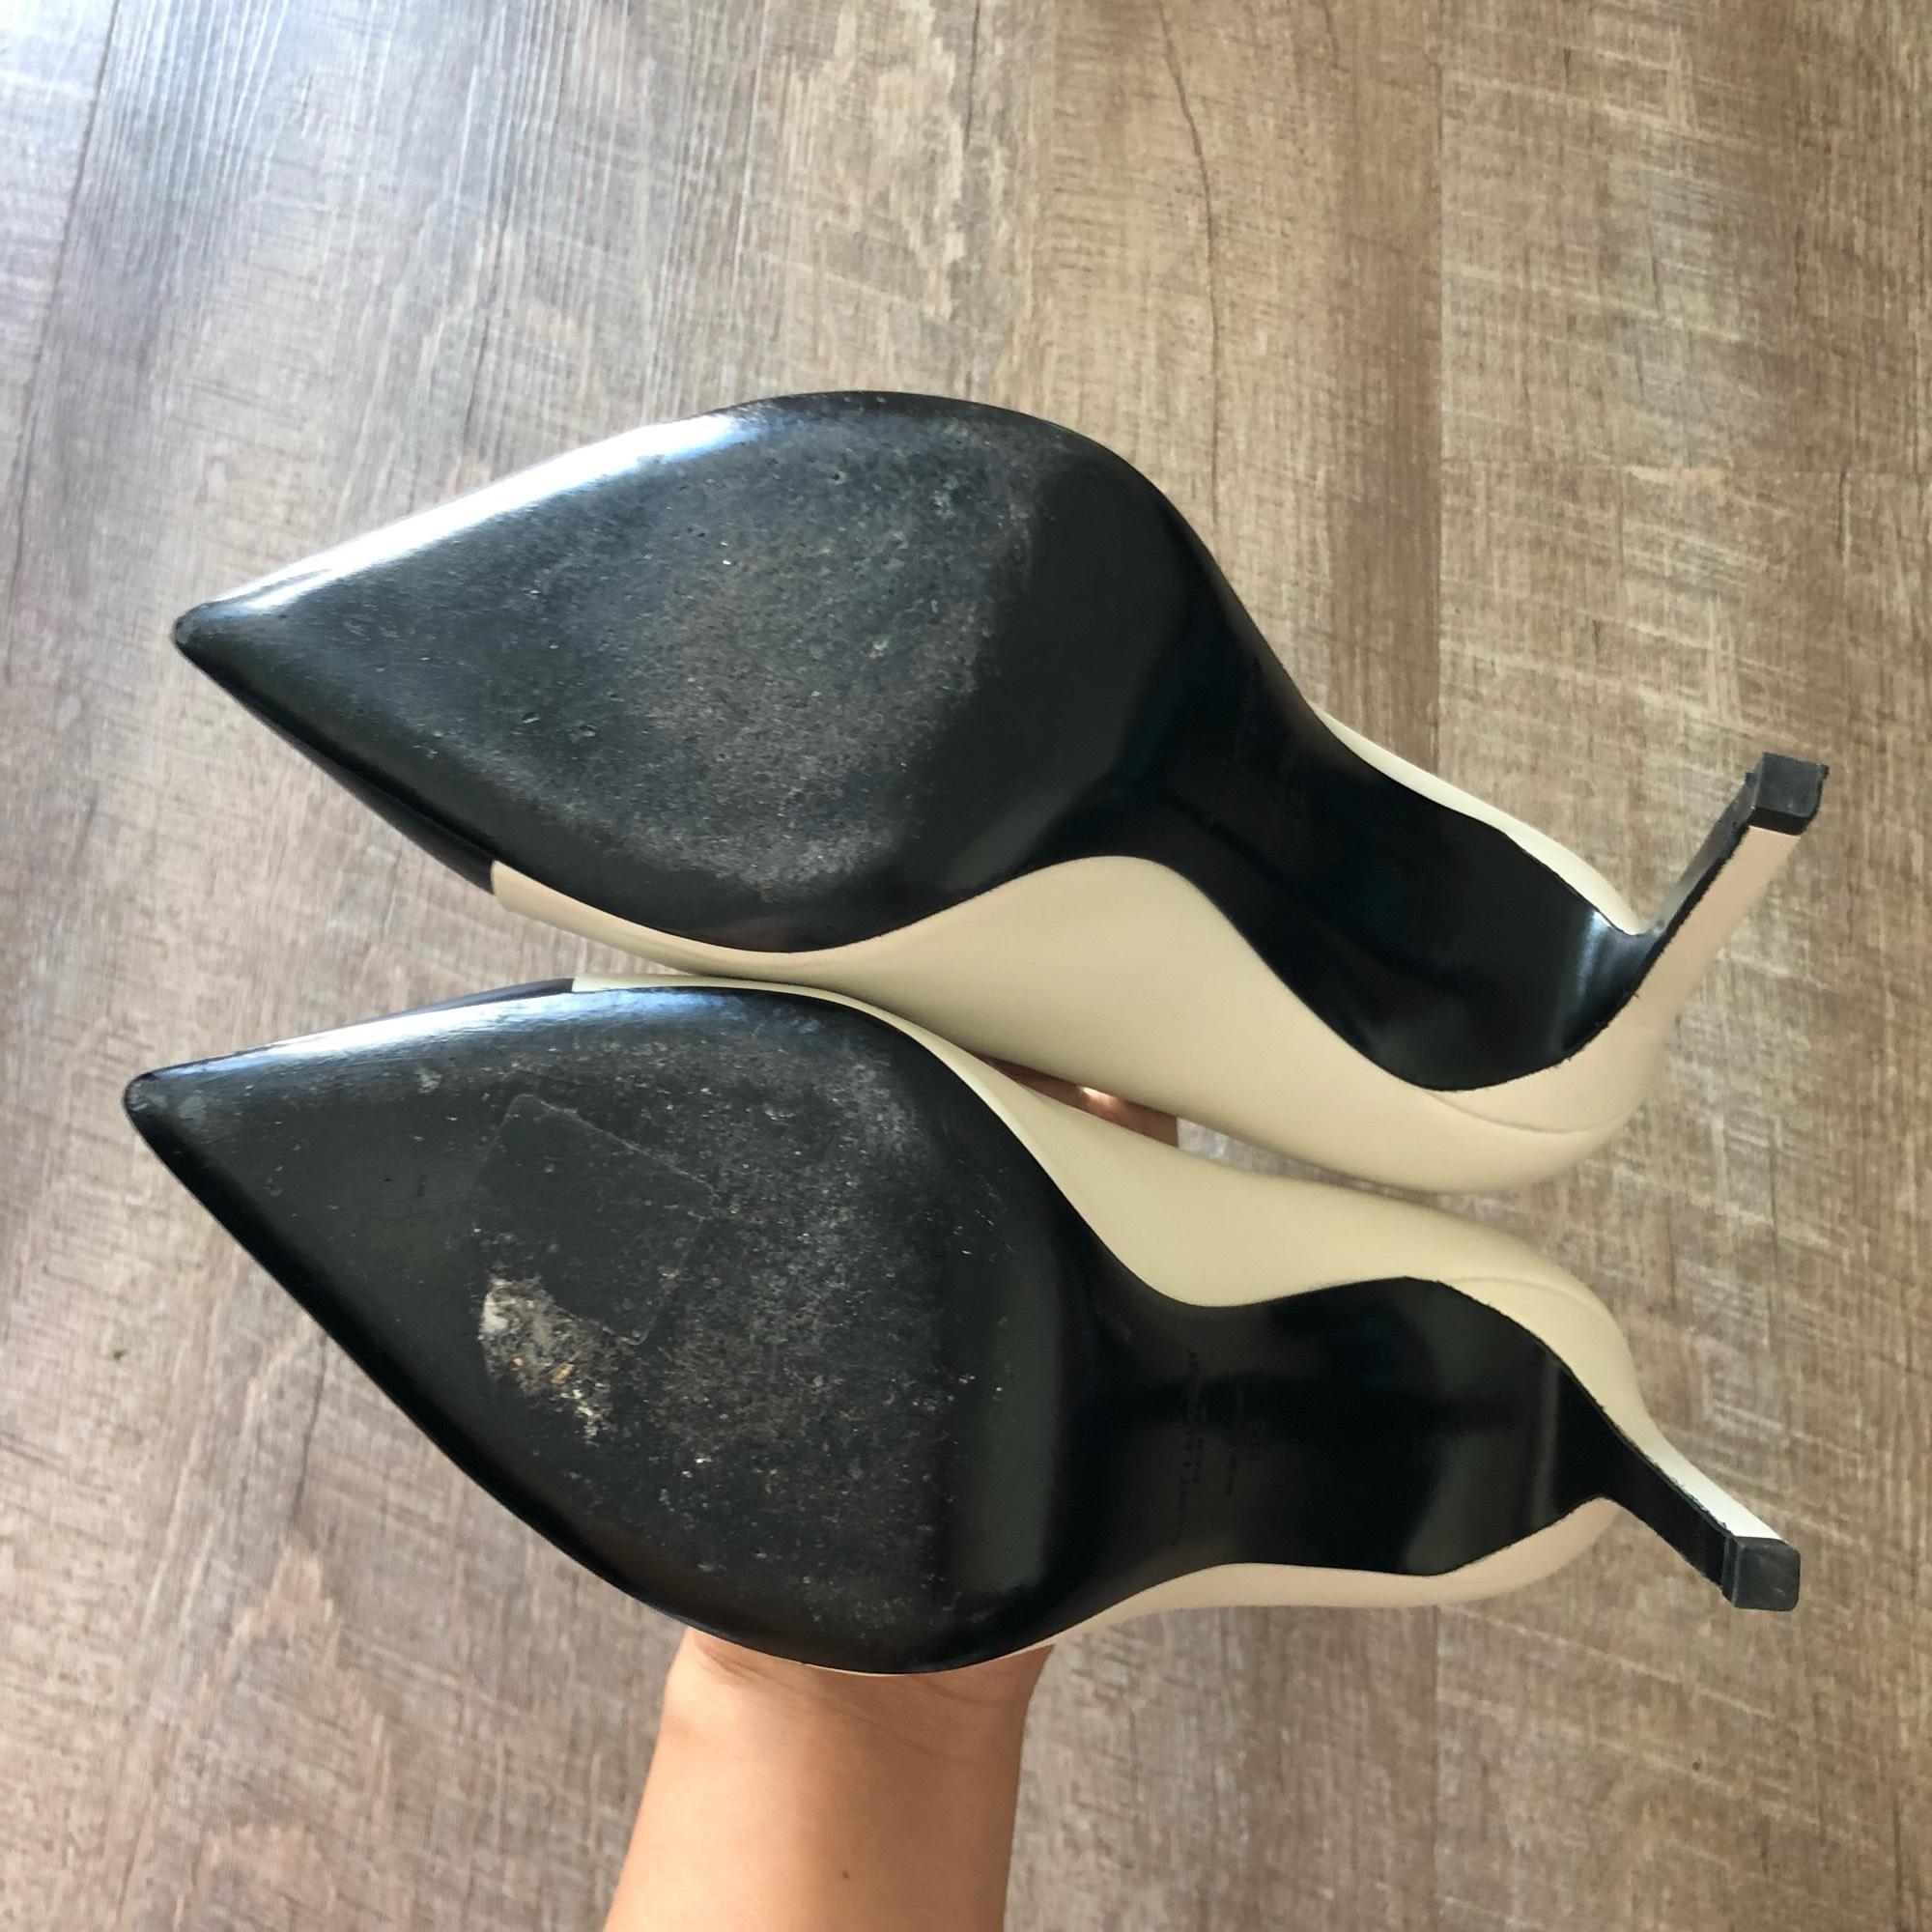 17a9d4775d ... Saint Laurent Black White Bi-color Leather Cap-toe White/Black Pumps  Size ...